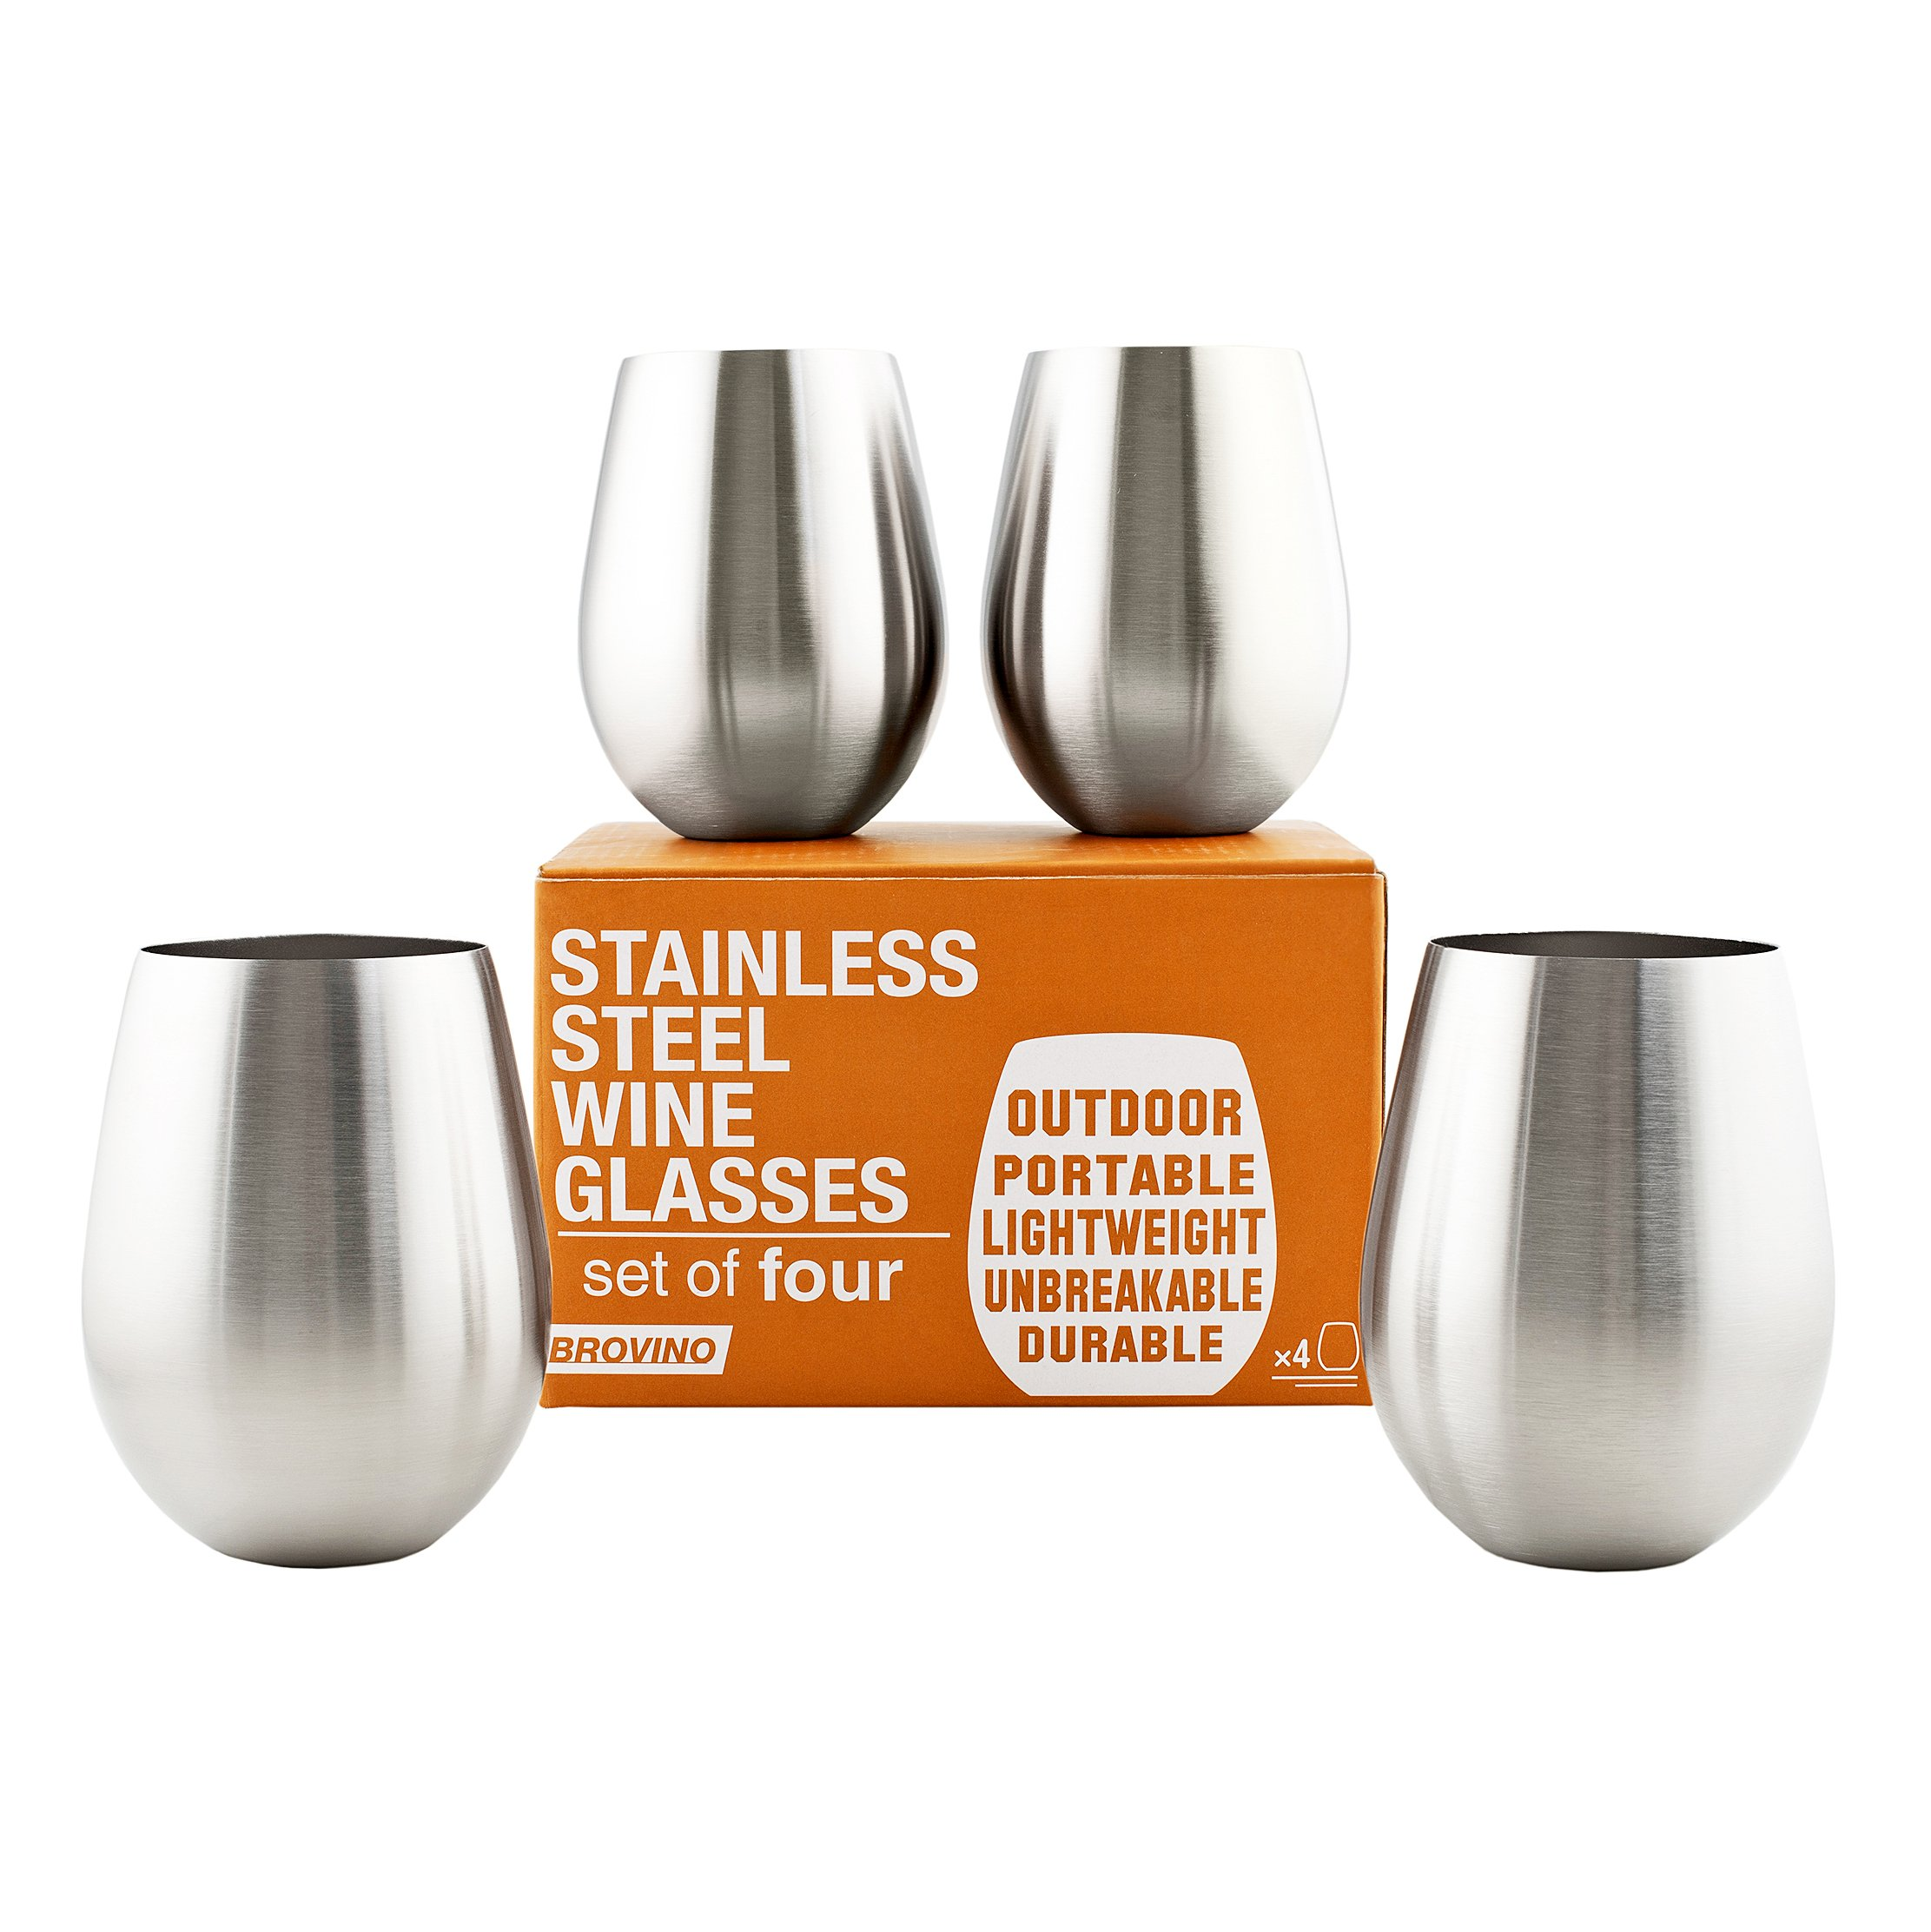 Stainless Steel Wine Glasses - Set of 4 Unbreakable Wine Tumblers Perfect For: Outdoor Travel, Camping, Hiking, Picnic Wine Cups by Brovino